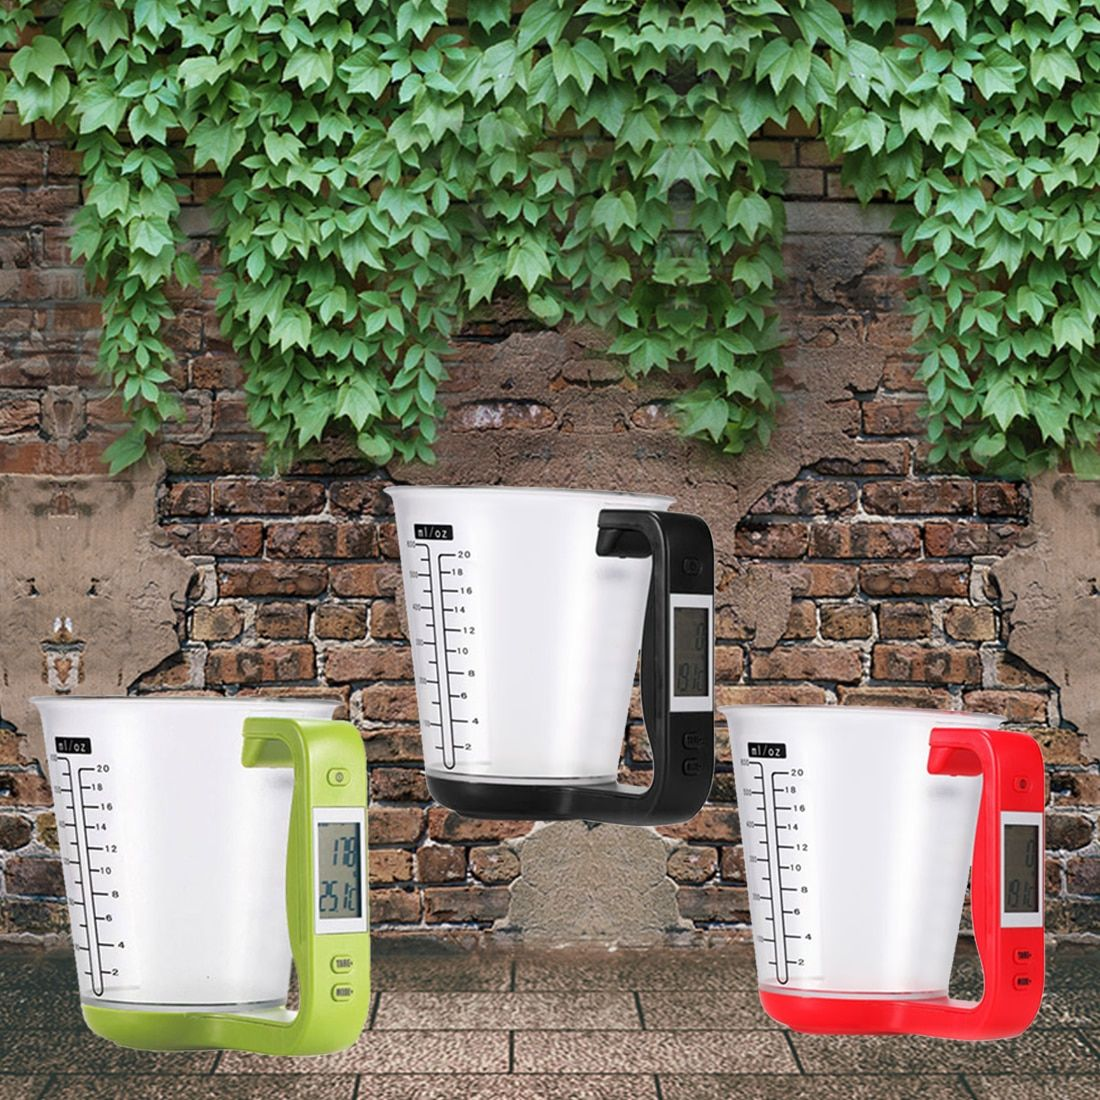 1Pcs Digital kitchen Electronic Measuring Cup Scale Household Jug Scales with LCD Display Temp Measurement 16x12.5x13.5cm